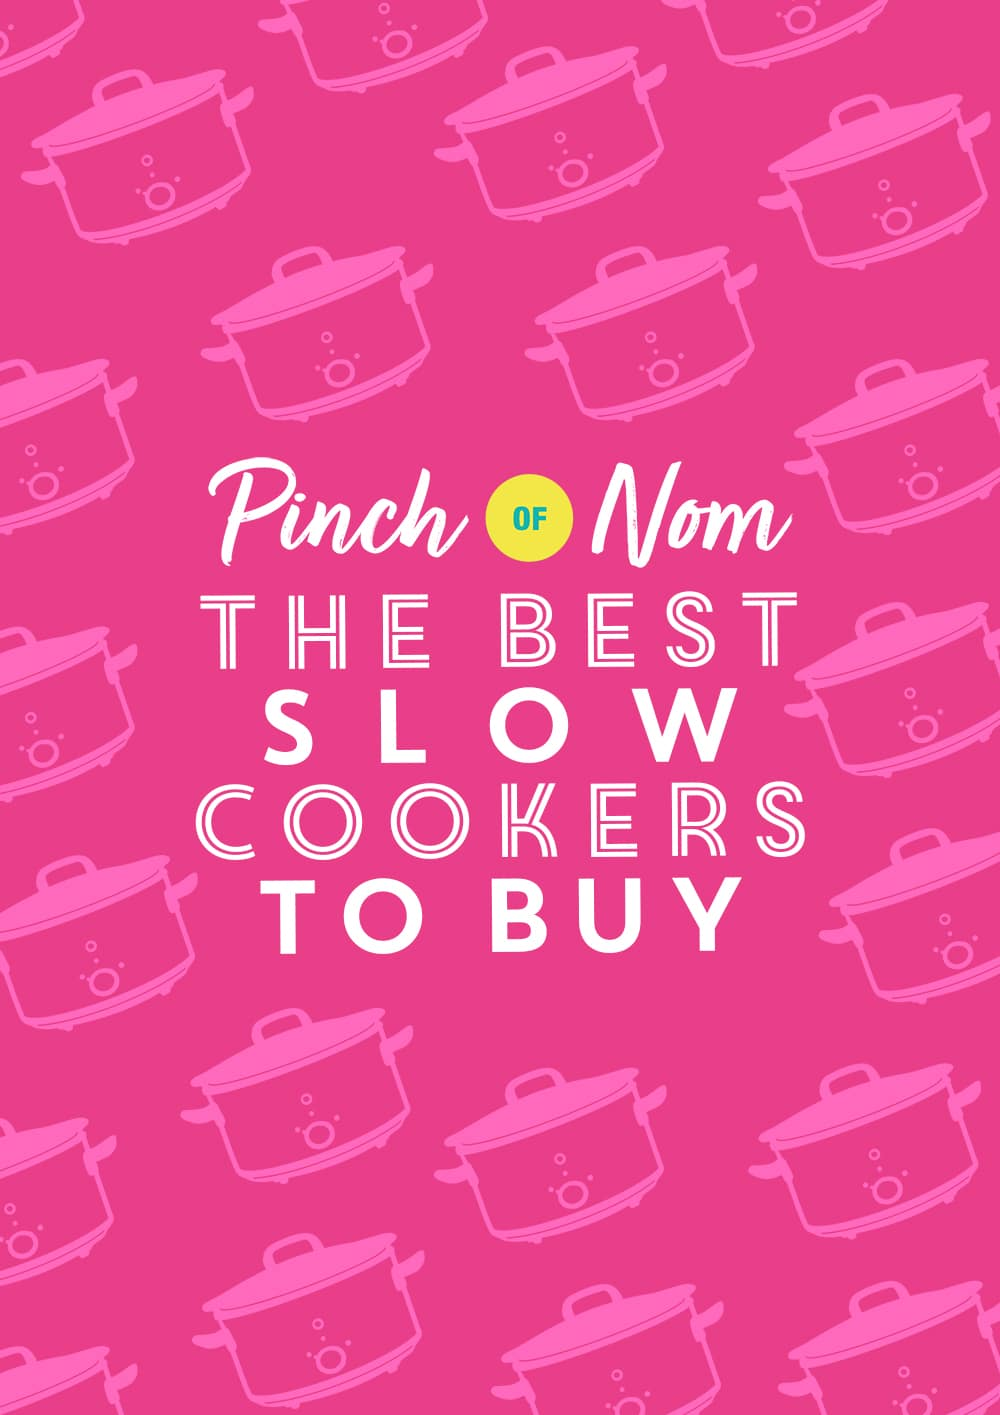 The best slow cookers to buy - Pinch of Nom Slimming Recipes